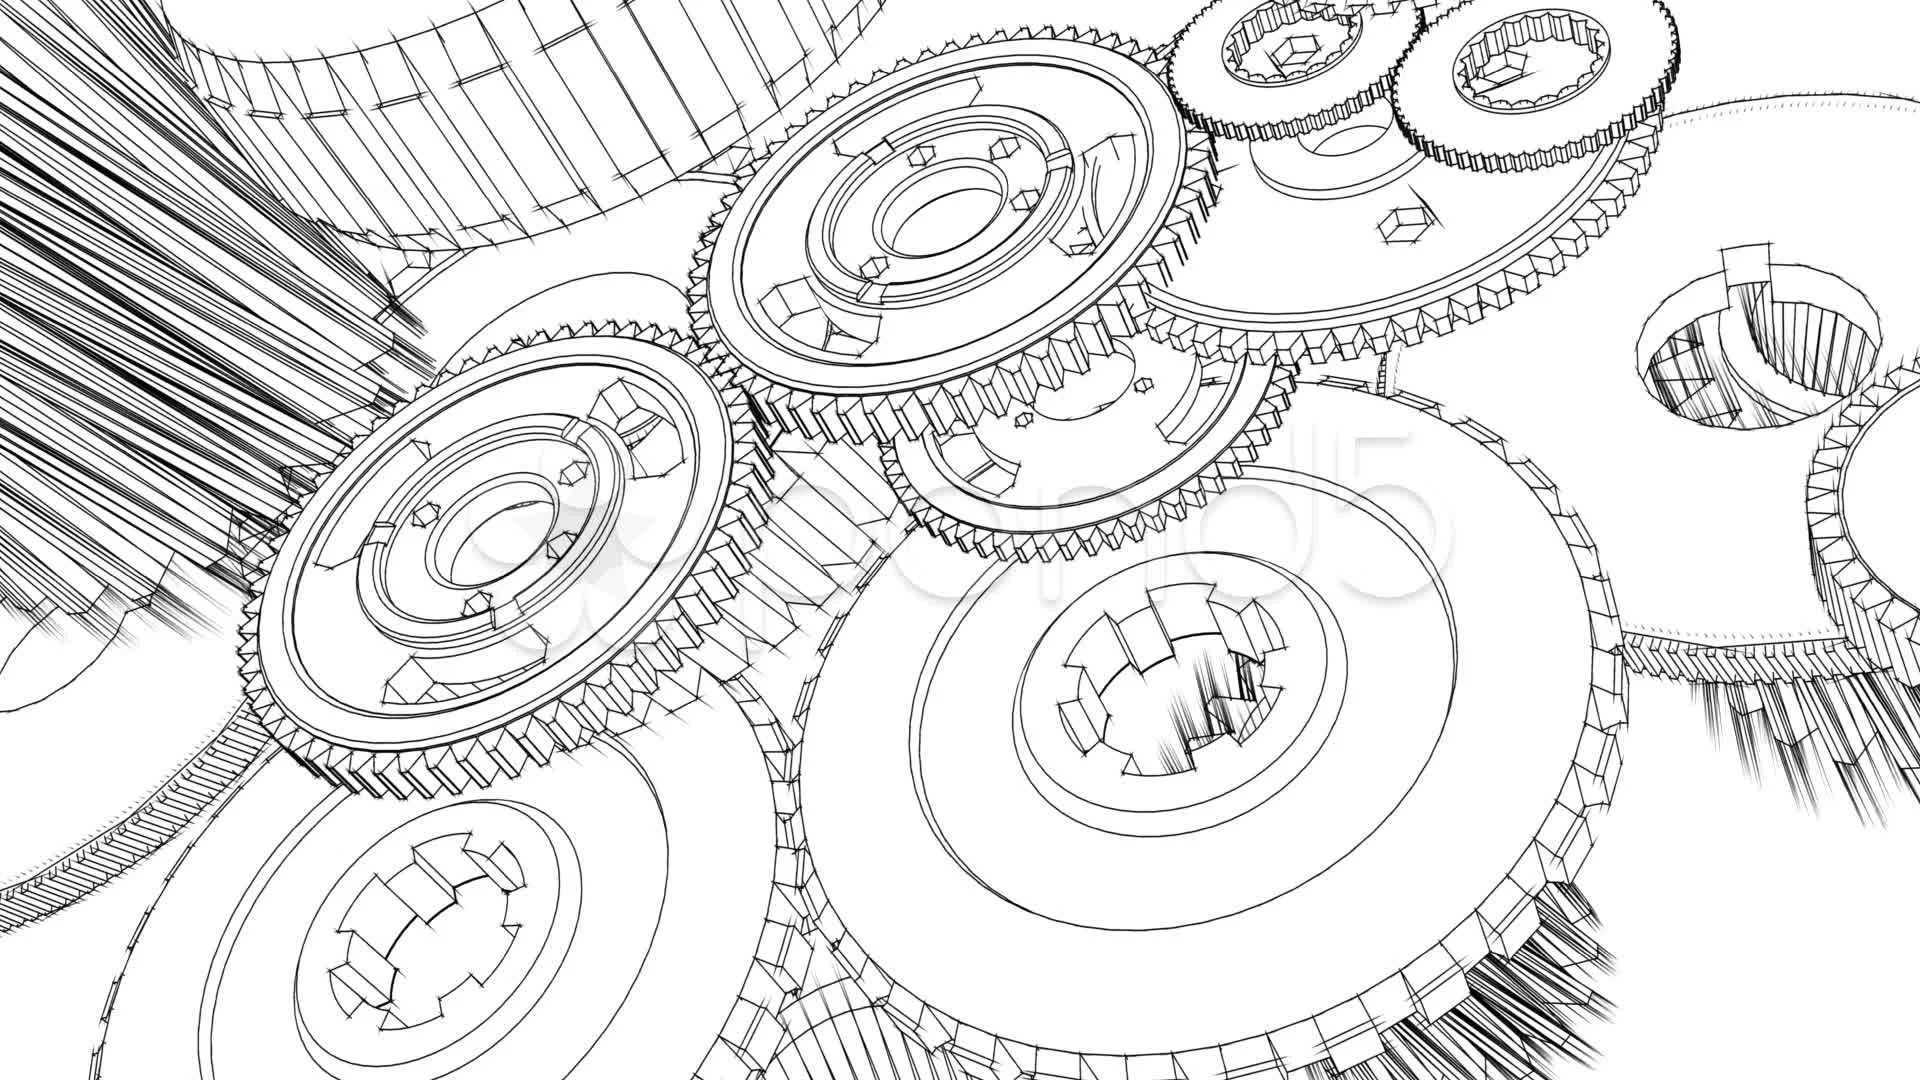 Gears Turning Blueprint Sketch Animation Video